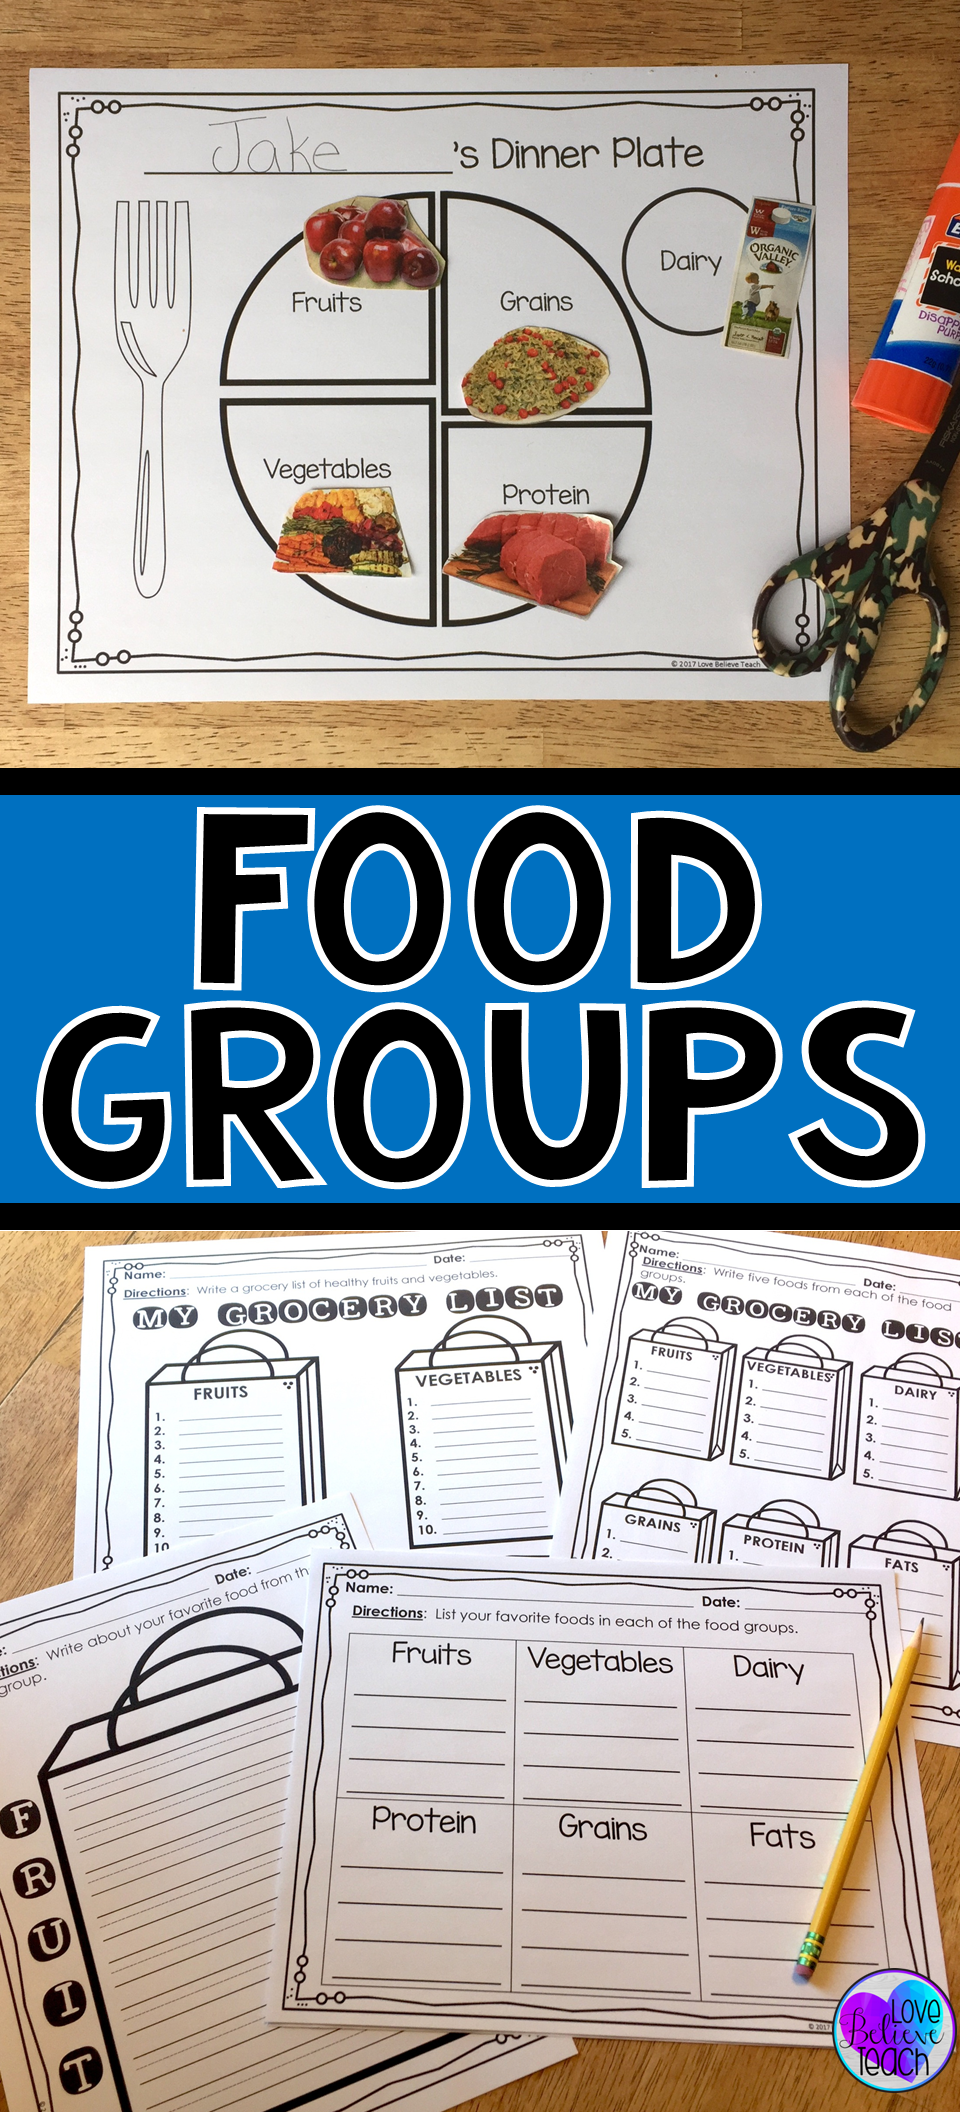 Food Groups Sorting and Searching Activities | Children\'s Activity ...